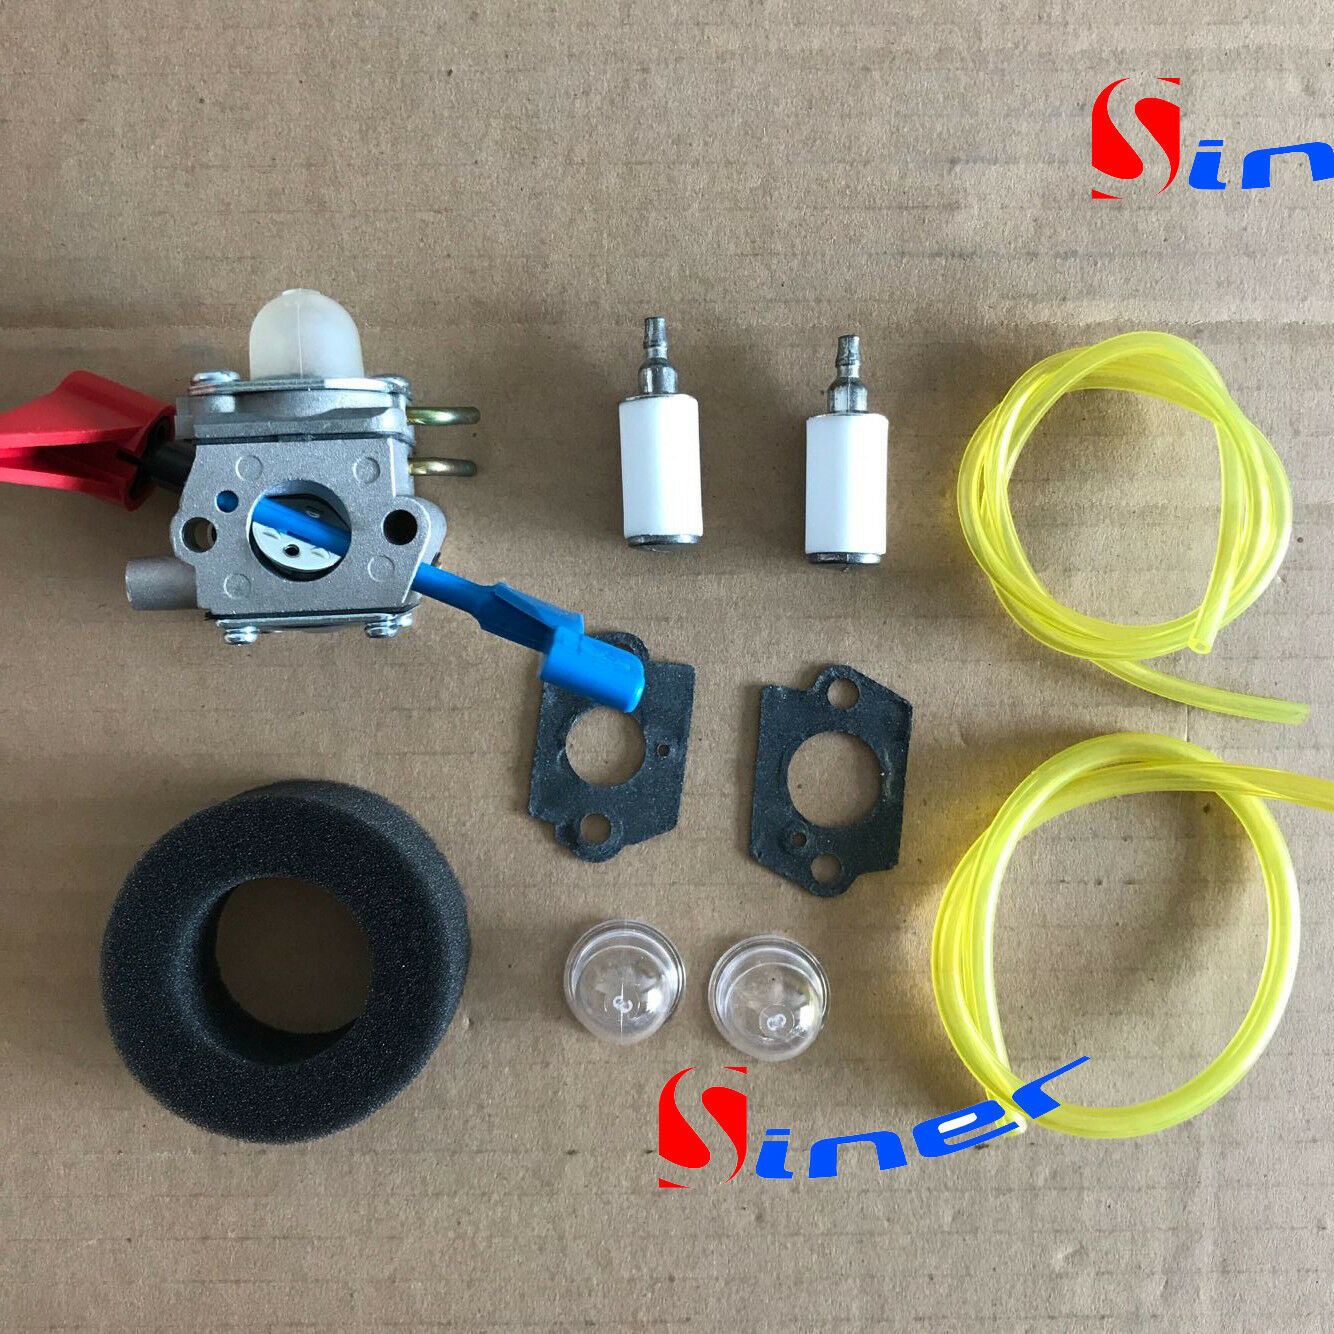 Primary image for Carburetor Air Filter Kit For Zama C1U-W46 545180864 Weedeater FB25 FB-25 Blower